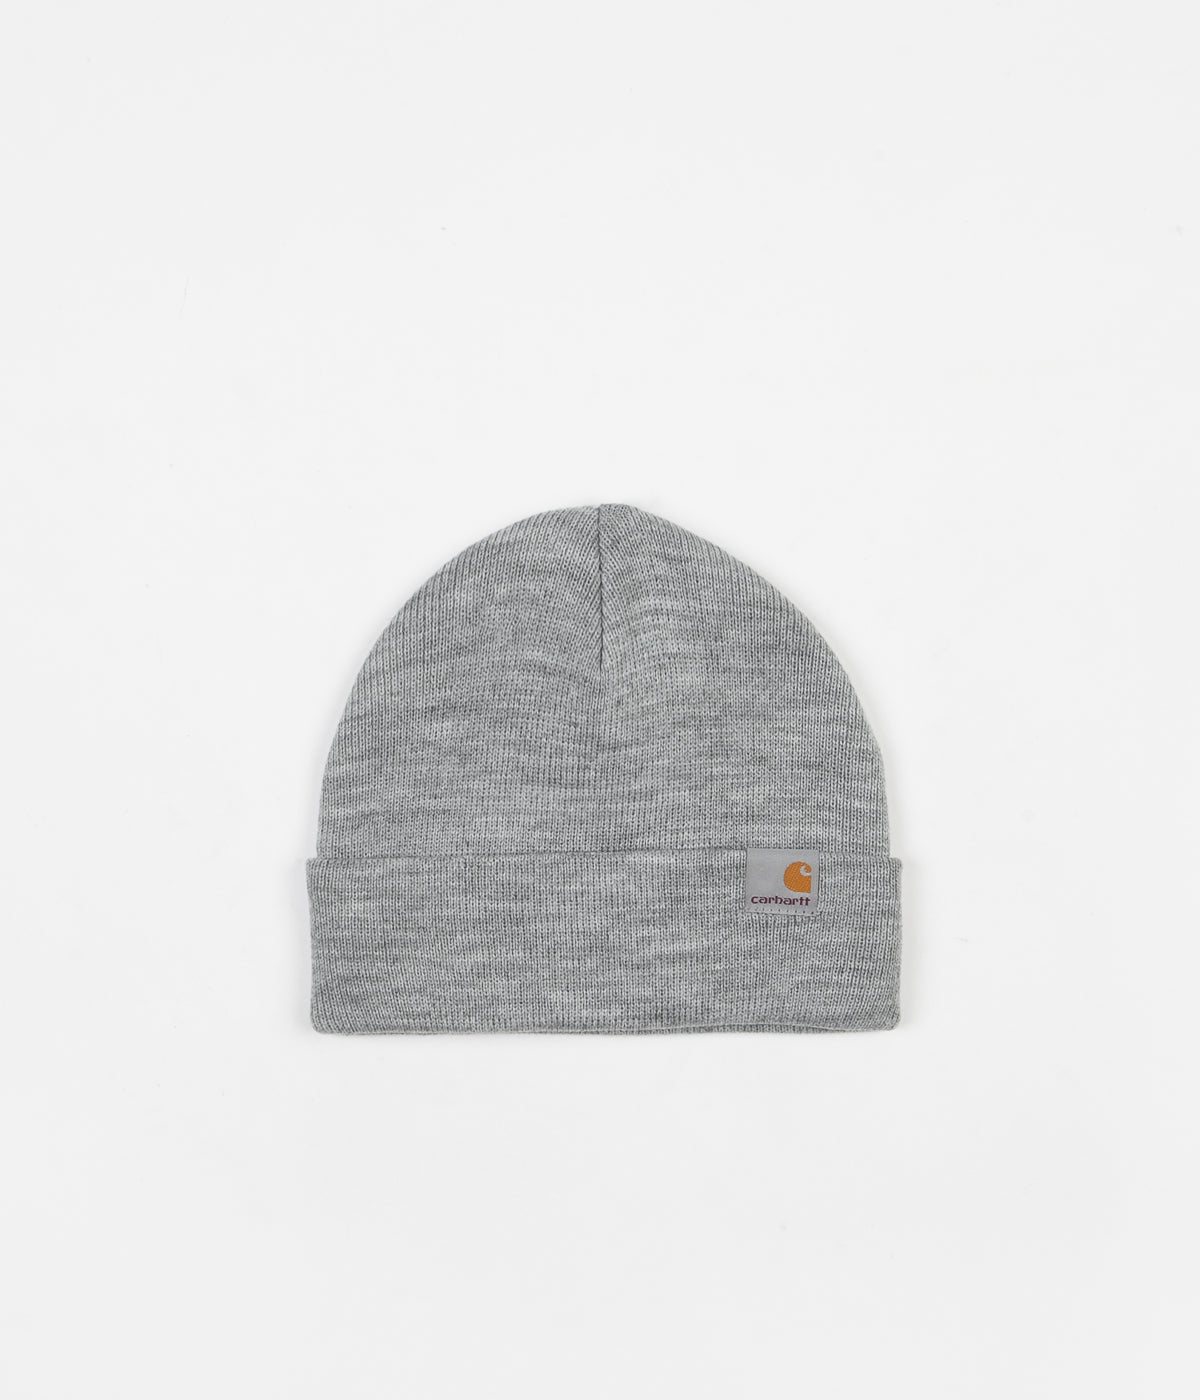 ff6a7e7258bb4 Carhartt Stratus Low Beanie - Grey Heather